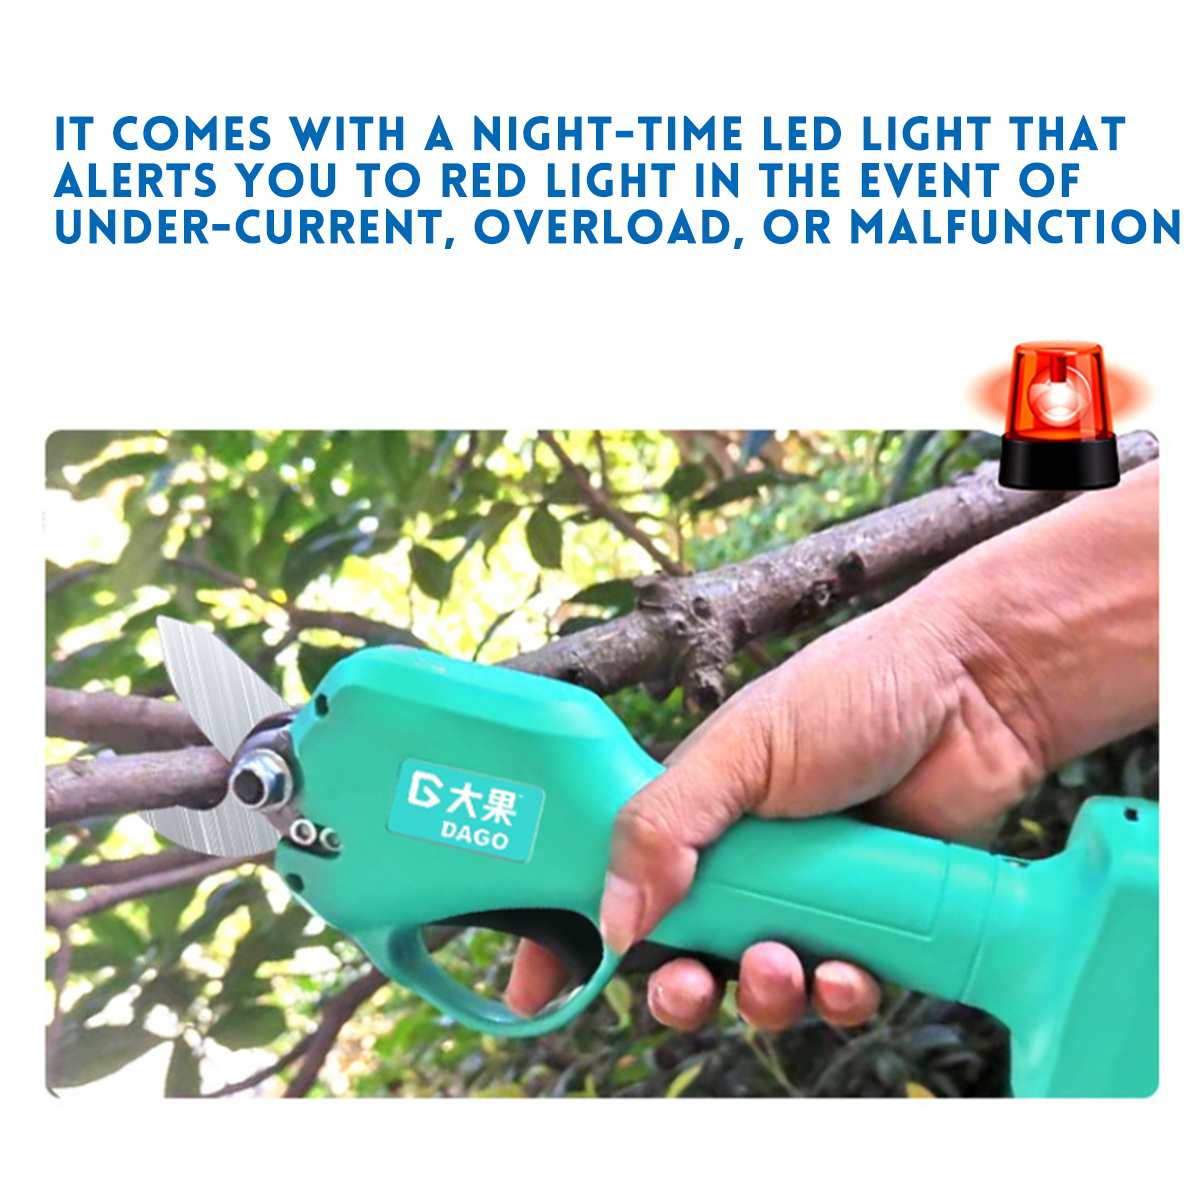 21V Wireless and Rechargeable Electric Garden Scissors for Pruning Branches with 30mm Maximum Cutting and 2 Li-ion Battery 2